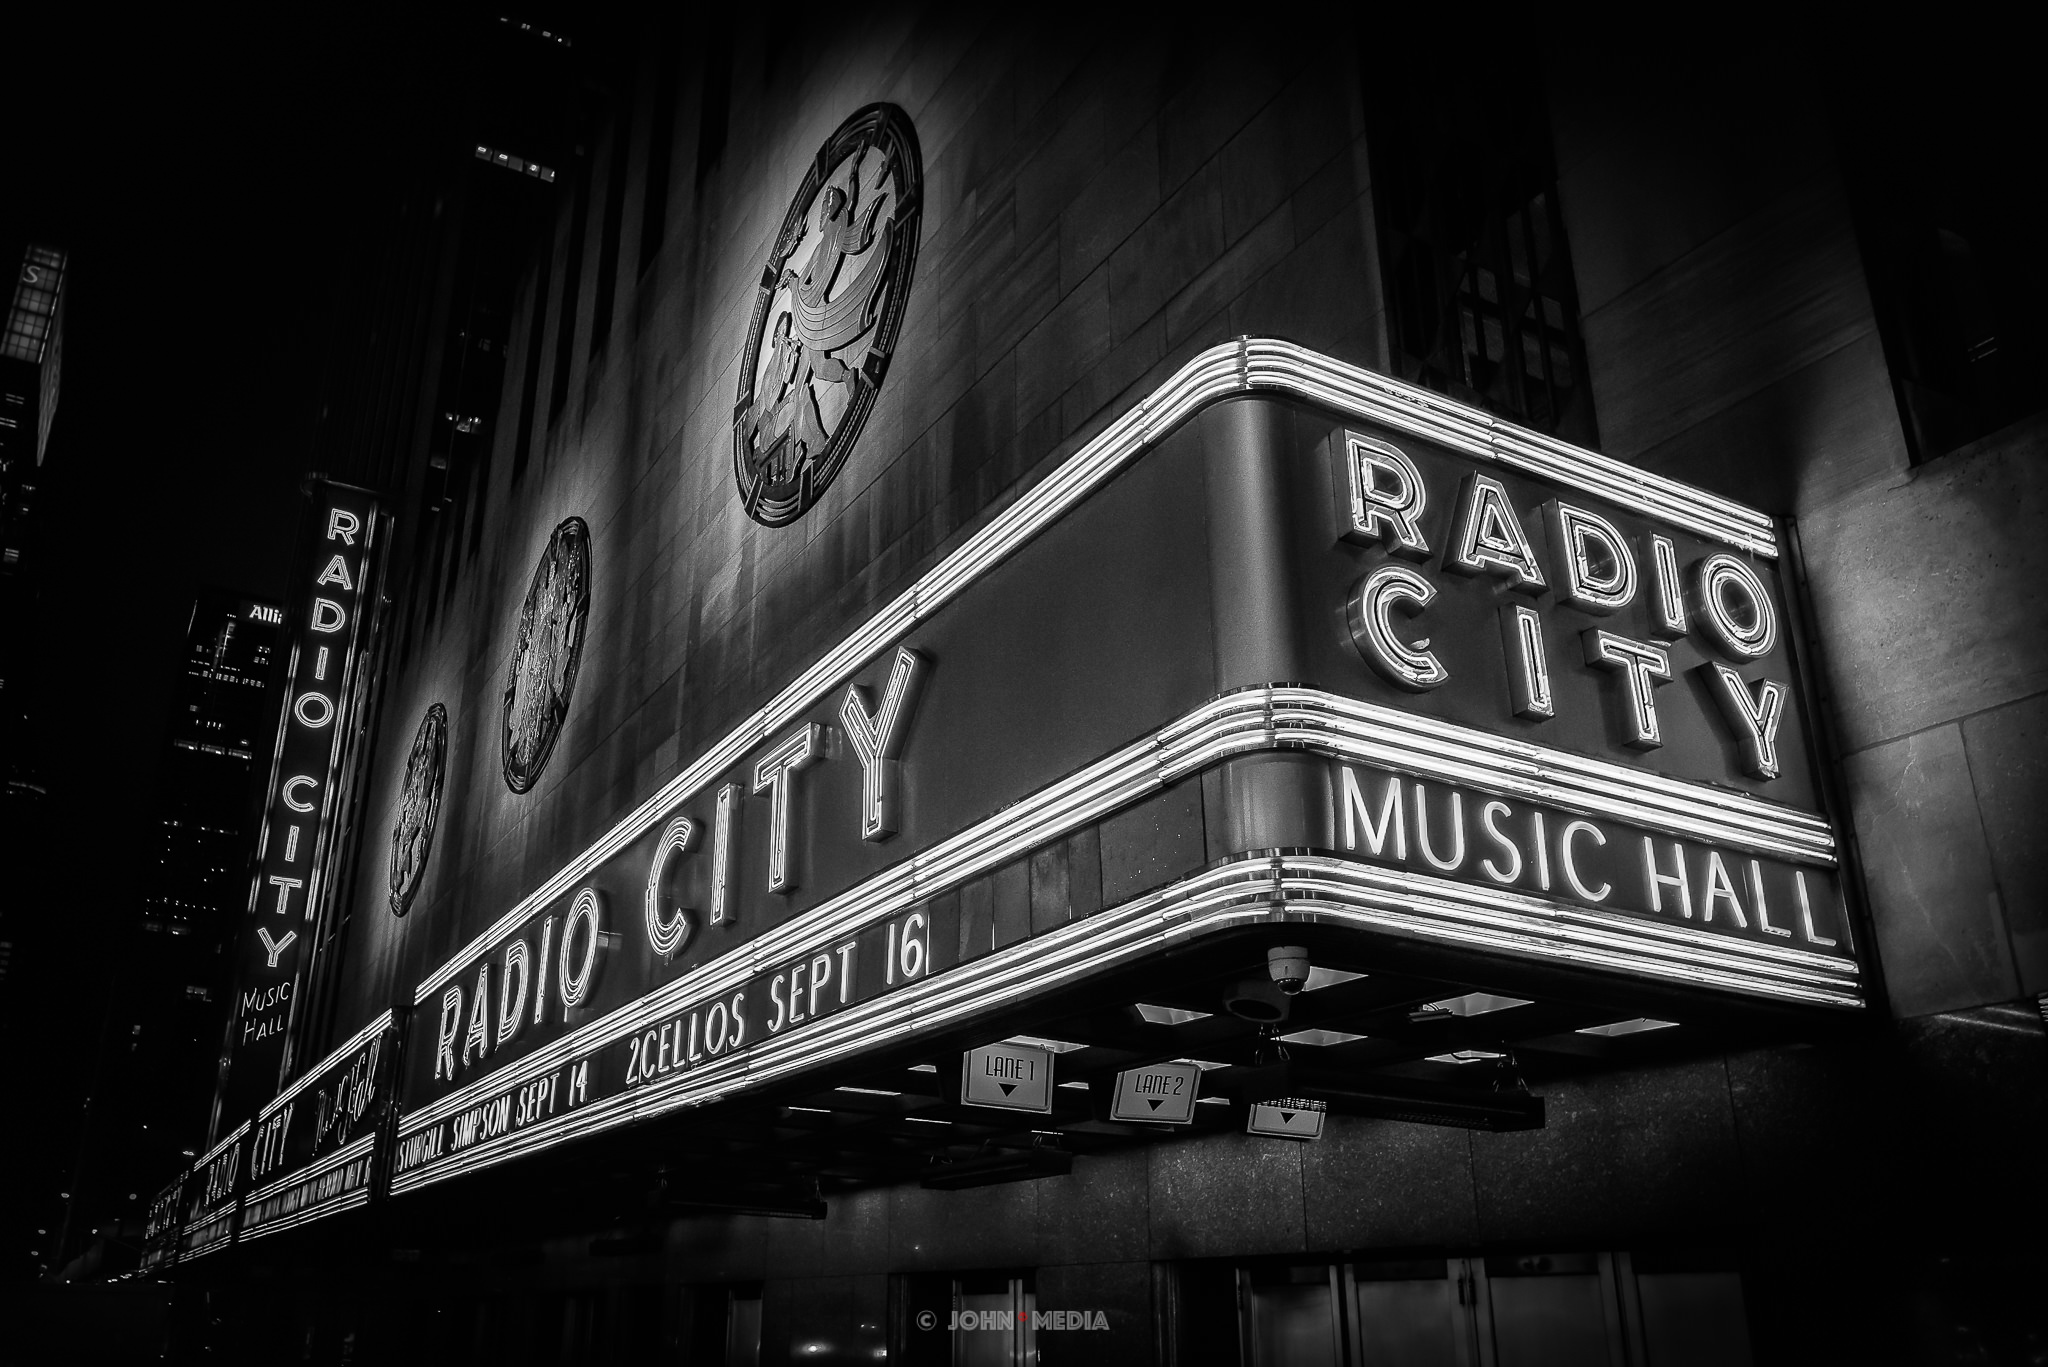 New York Radio City